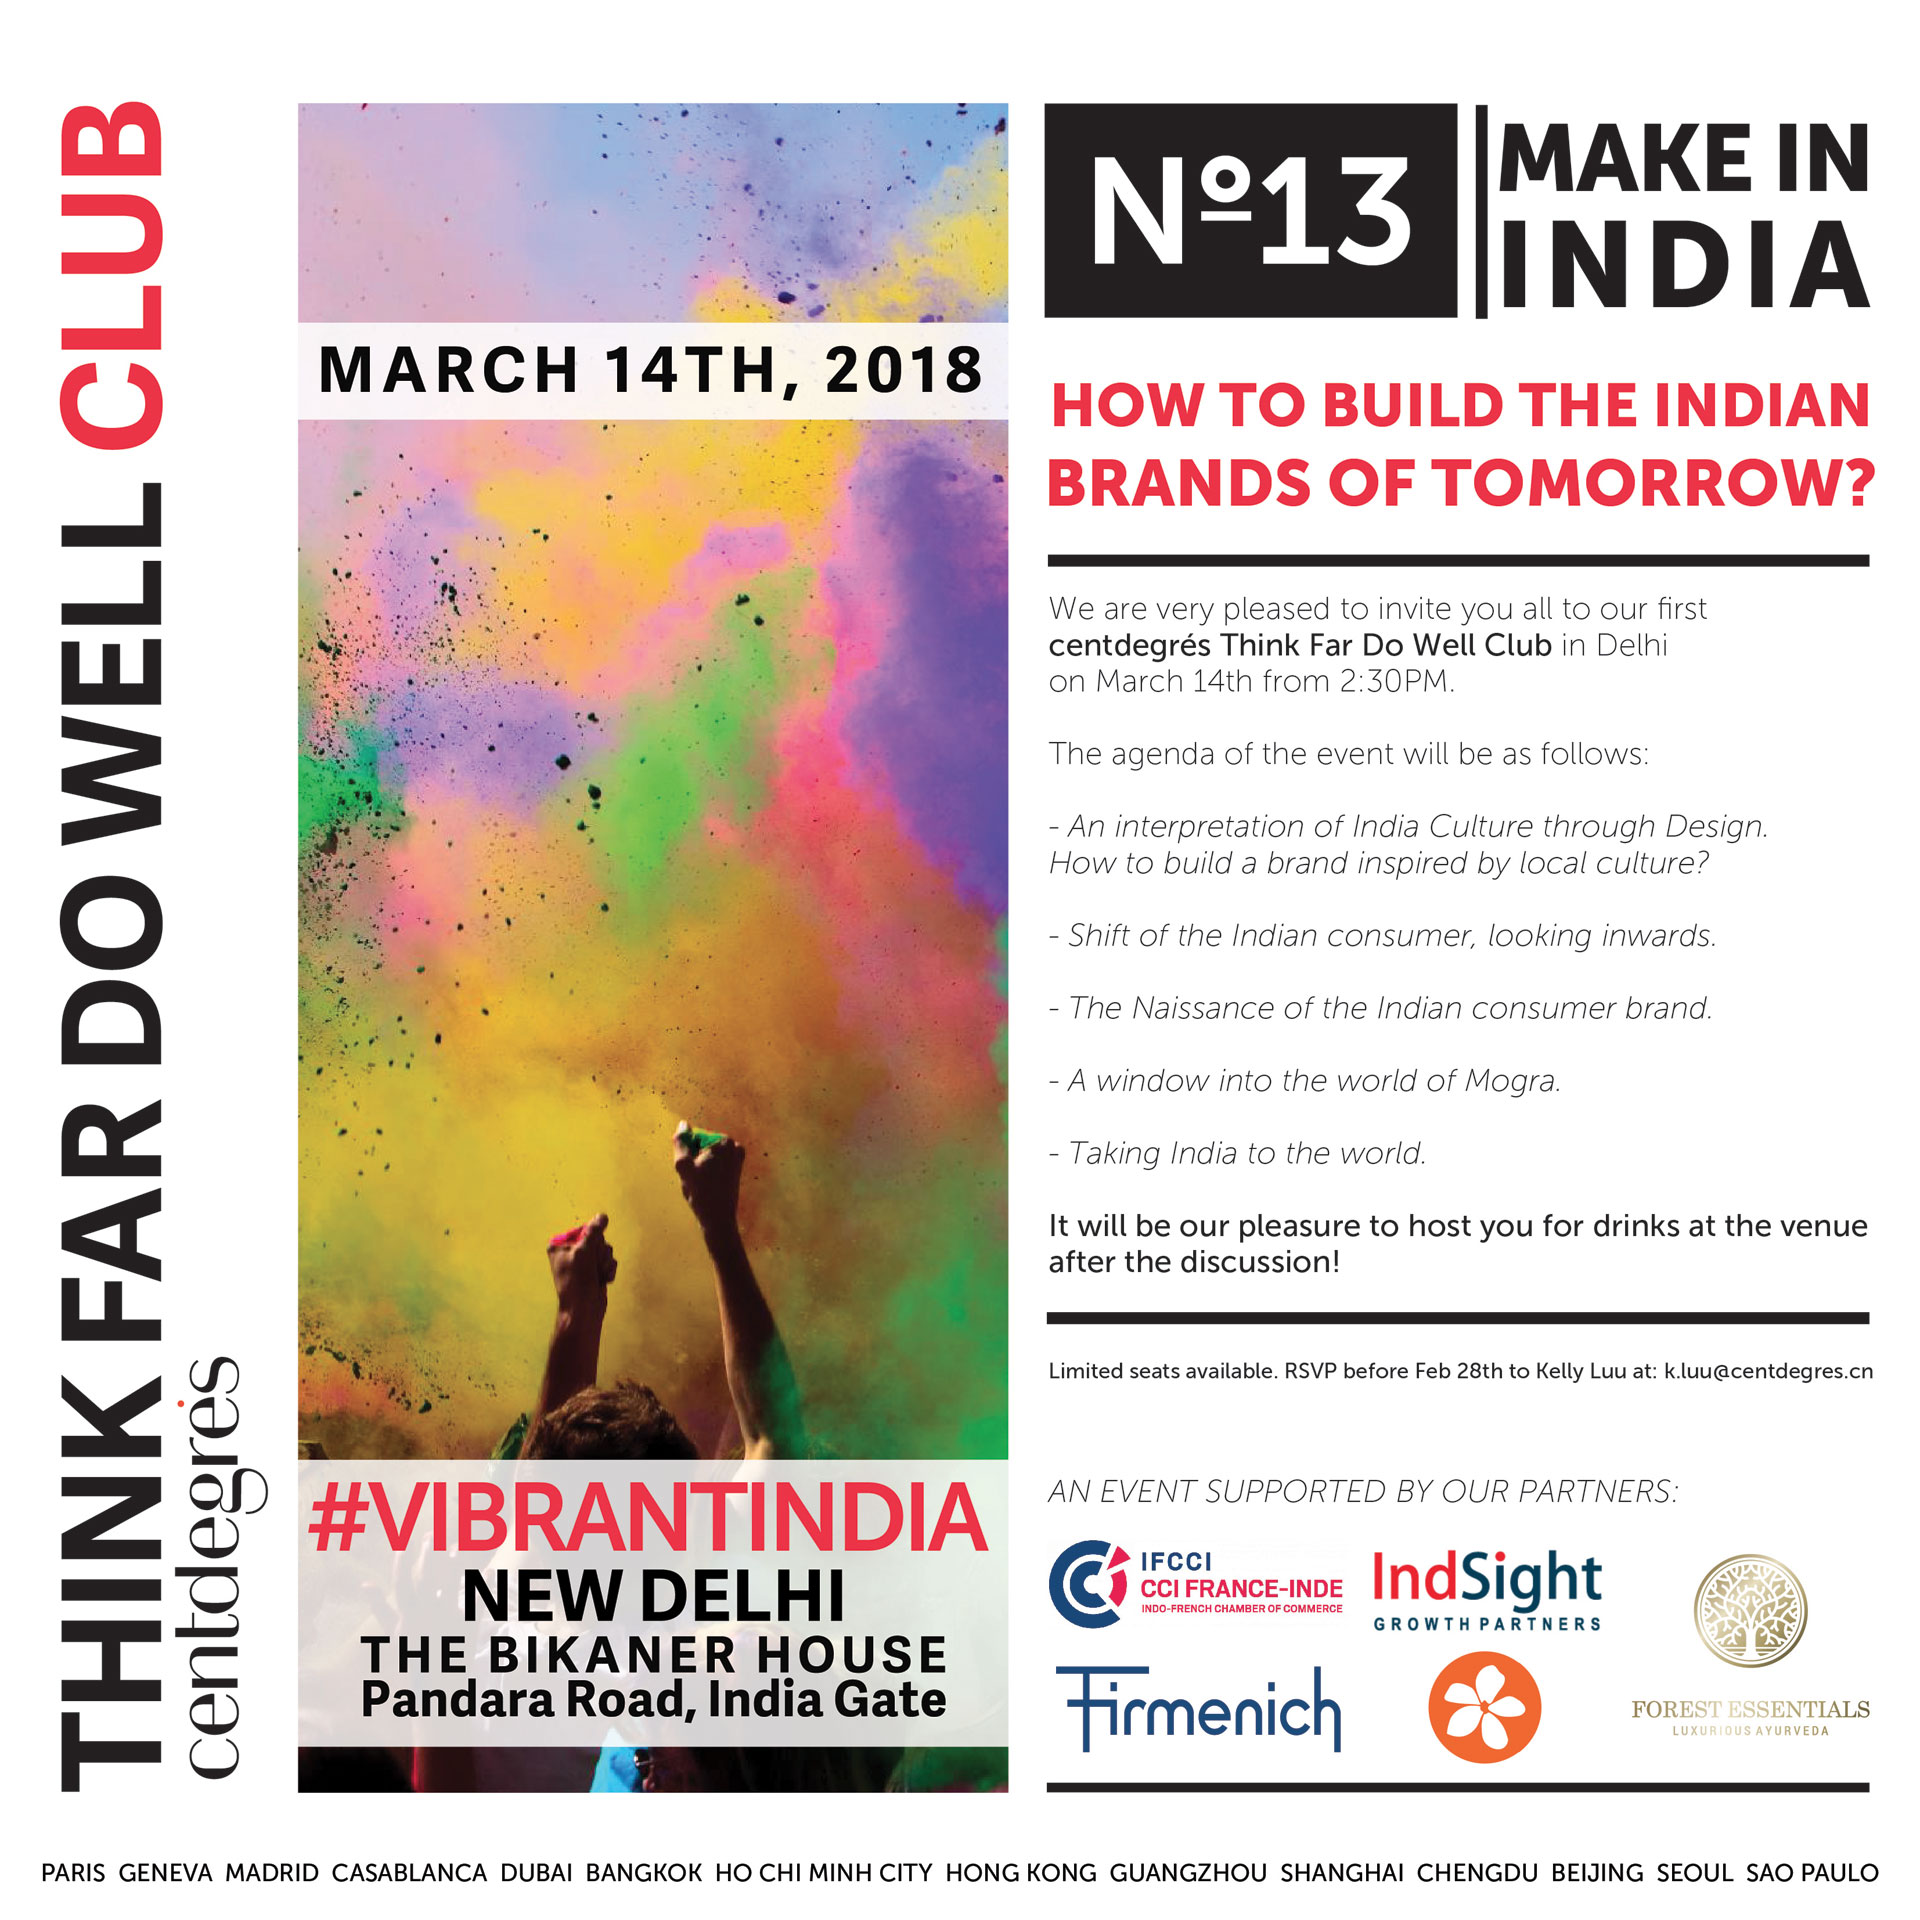 N°13: HOW TO BUILD THE INDIAN BRANDS OF TOMORROW?